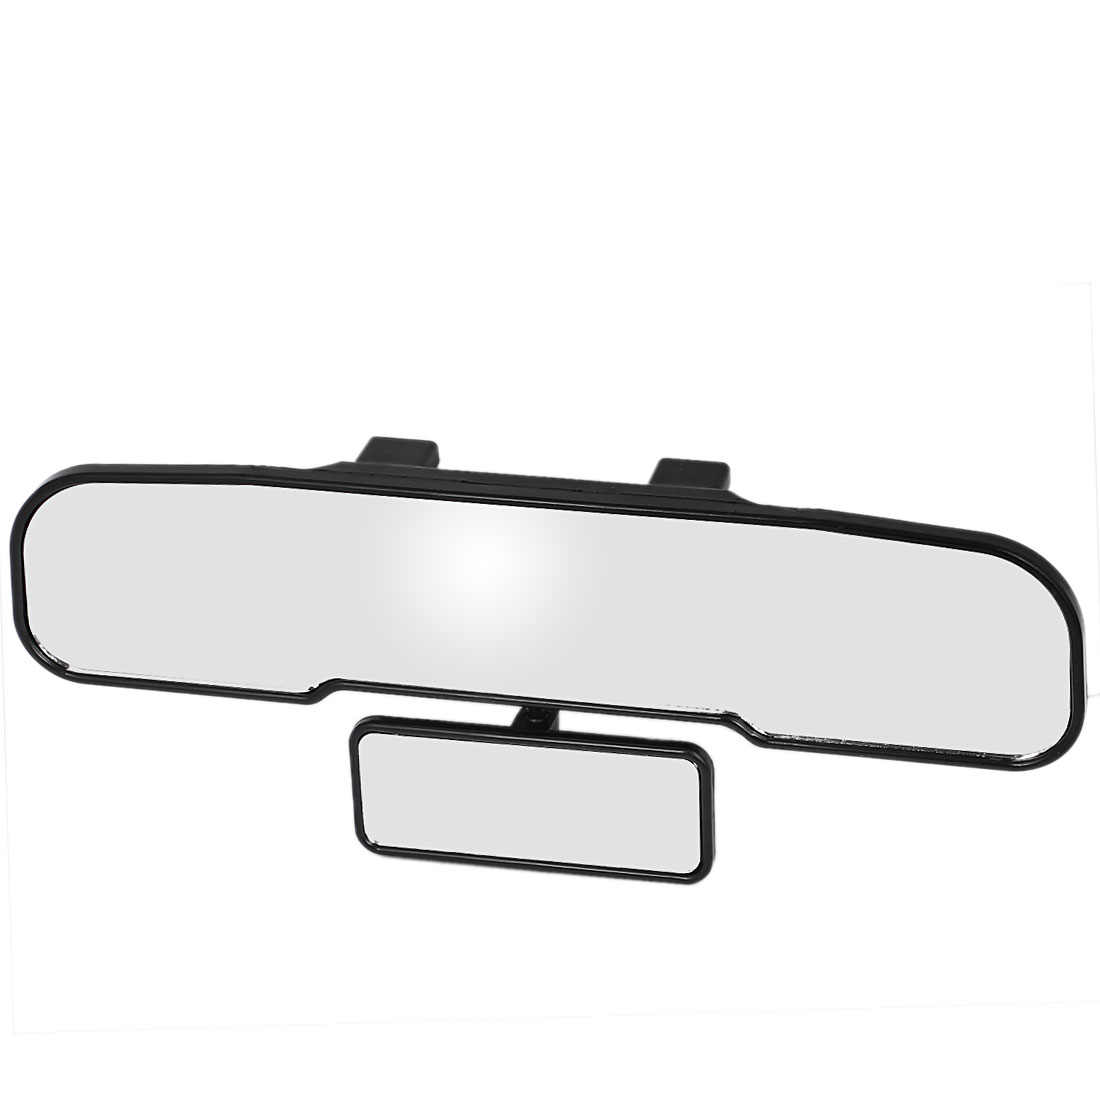 x autohaux auto car interior plastic frame wide angle viewing rearview mirror w blind spot. Black Bedroom Furniture Sets. Home Design Ideas